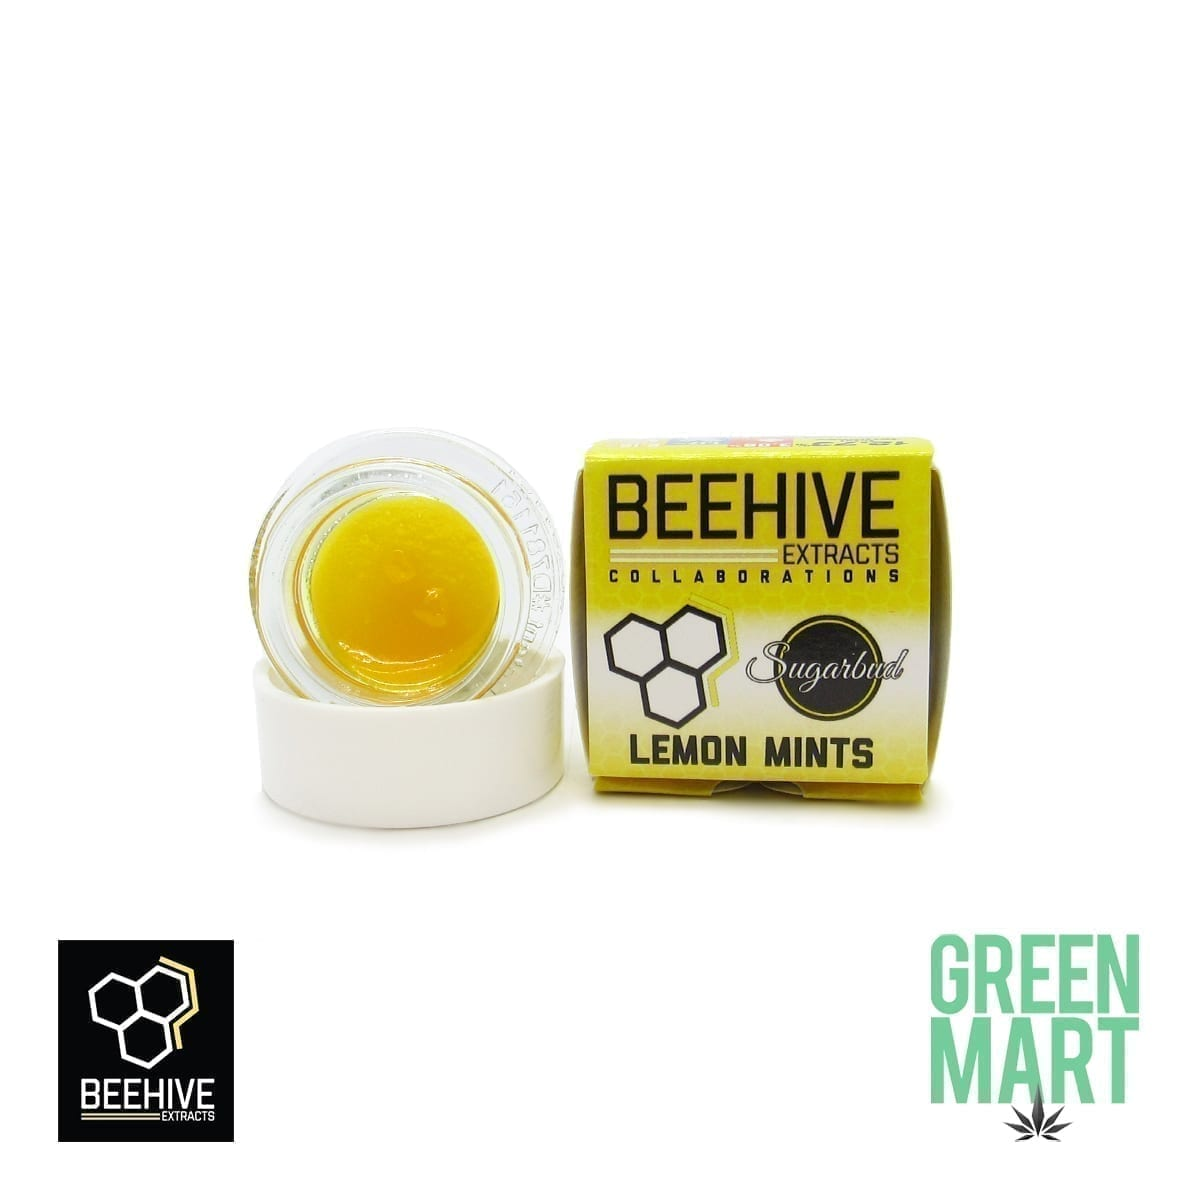 Bee Hive Extracts - Lemon Mints